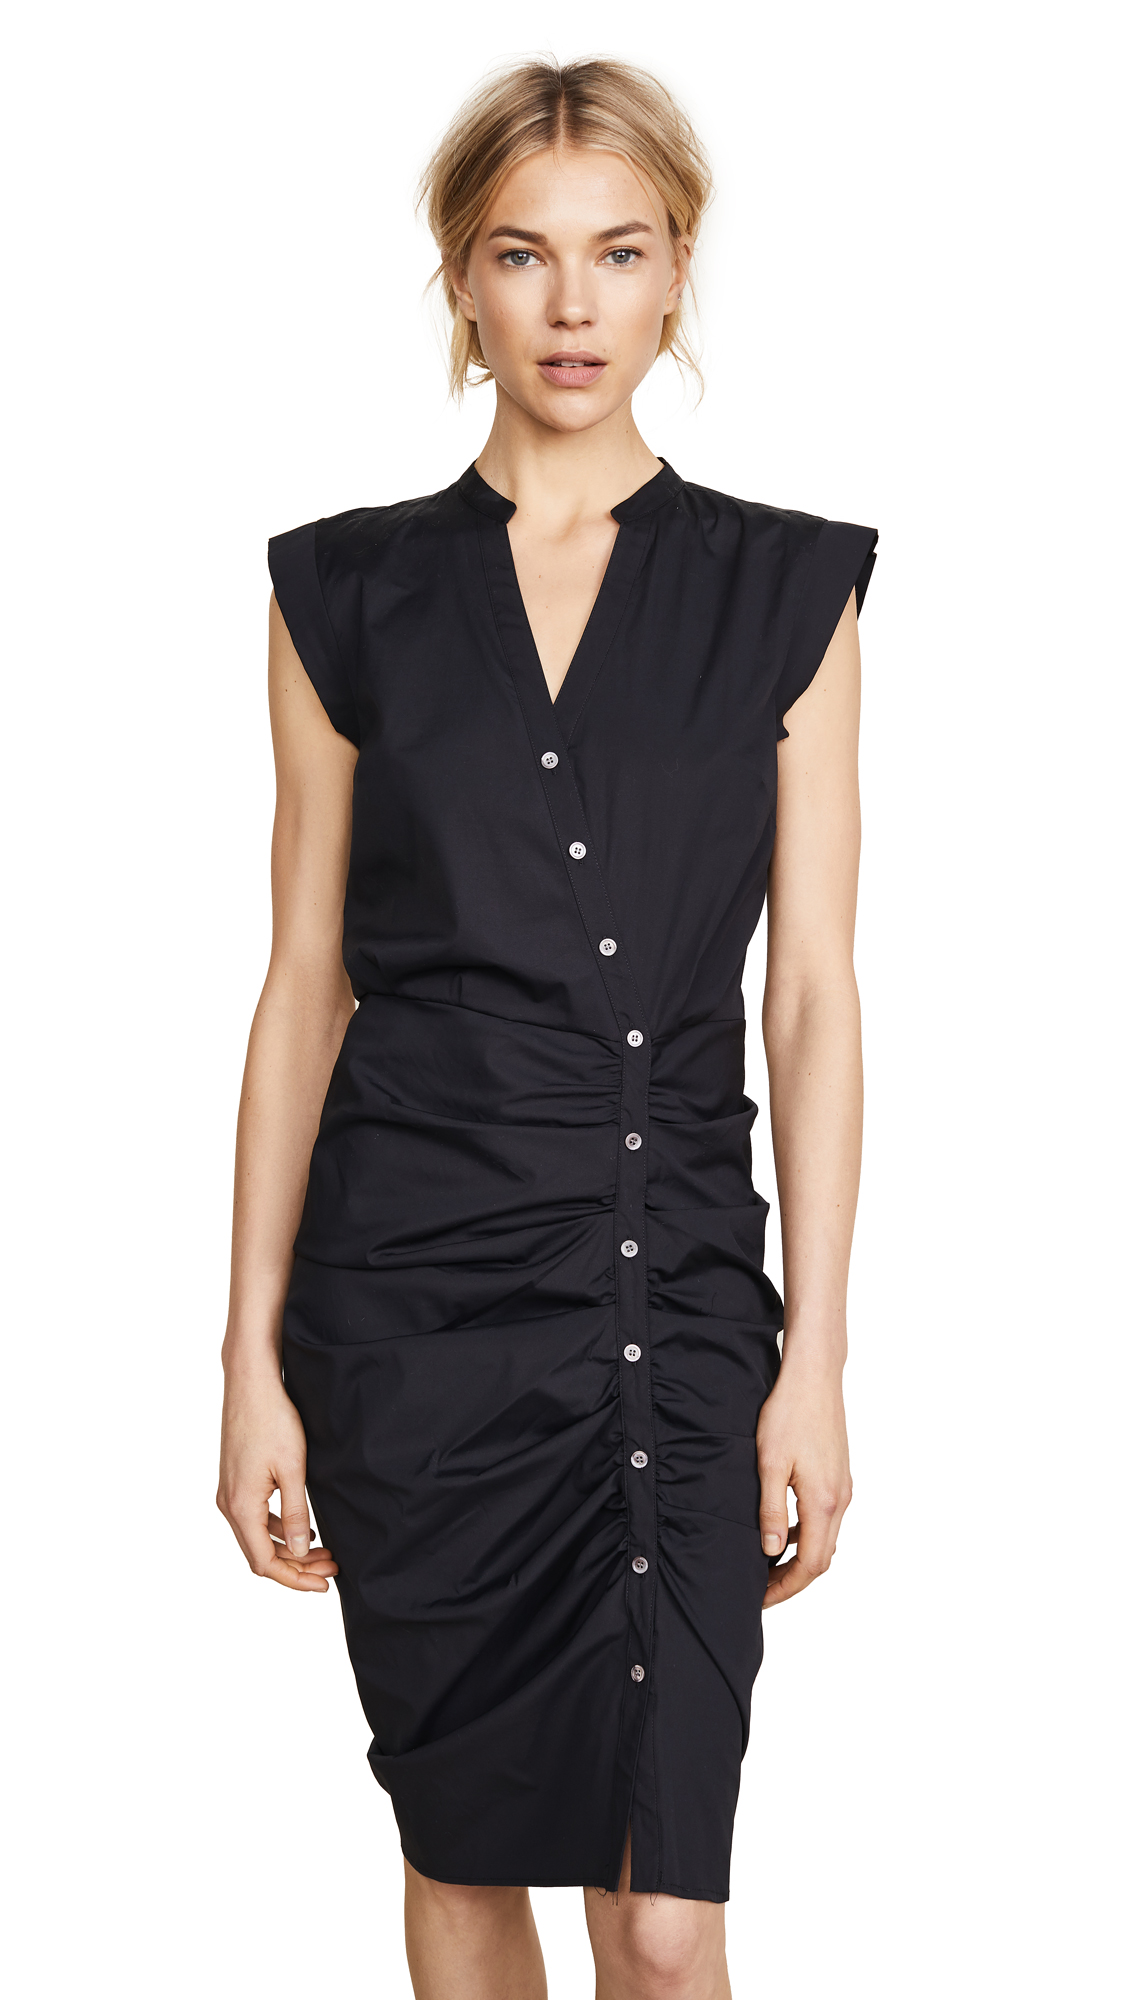 Veronica Beard Long Ruched Dress - Black